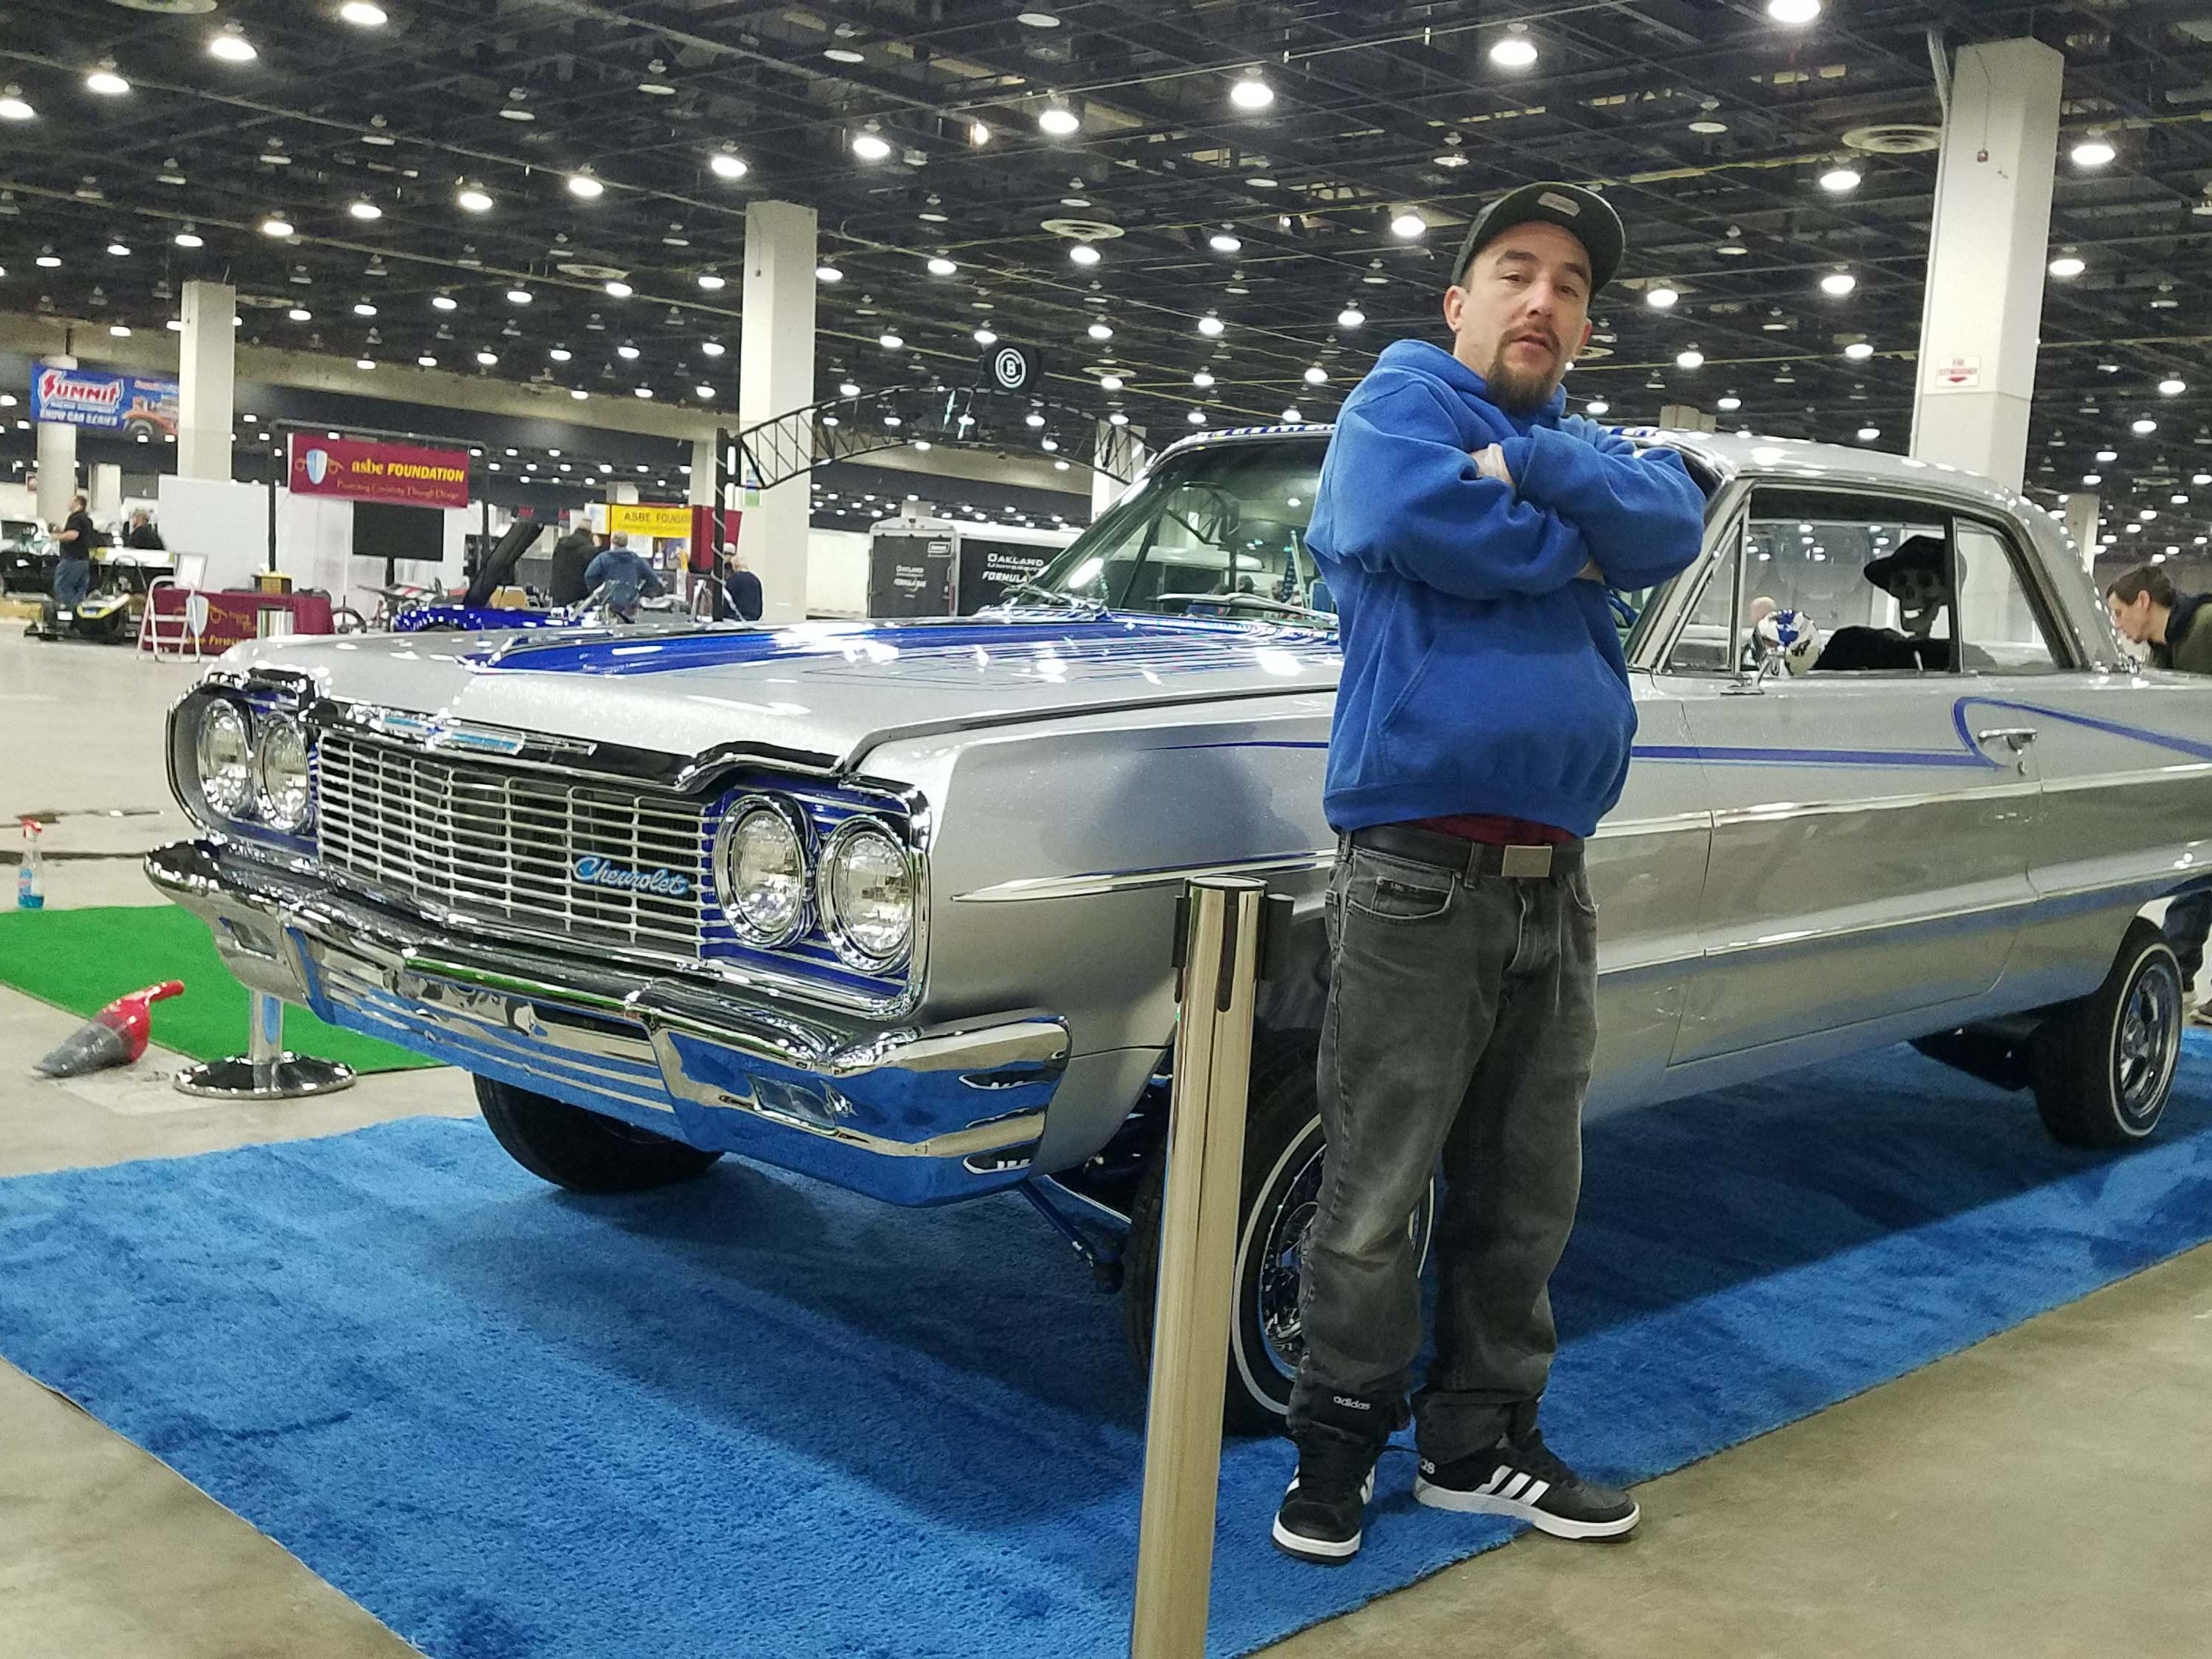 Low-rider participant Jose Madrigal of southwest Detroit shows off his 1964 Impala - stuffed with low-rider suspension and 5.7-liter Corvette V-8 engine.